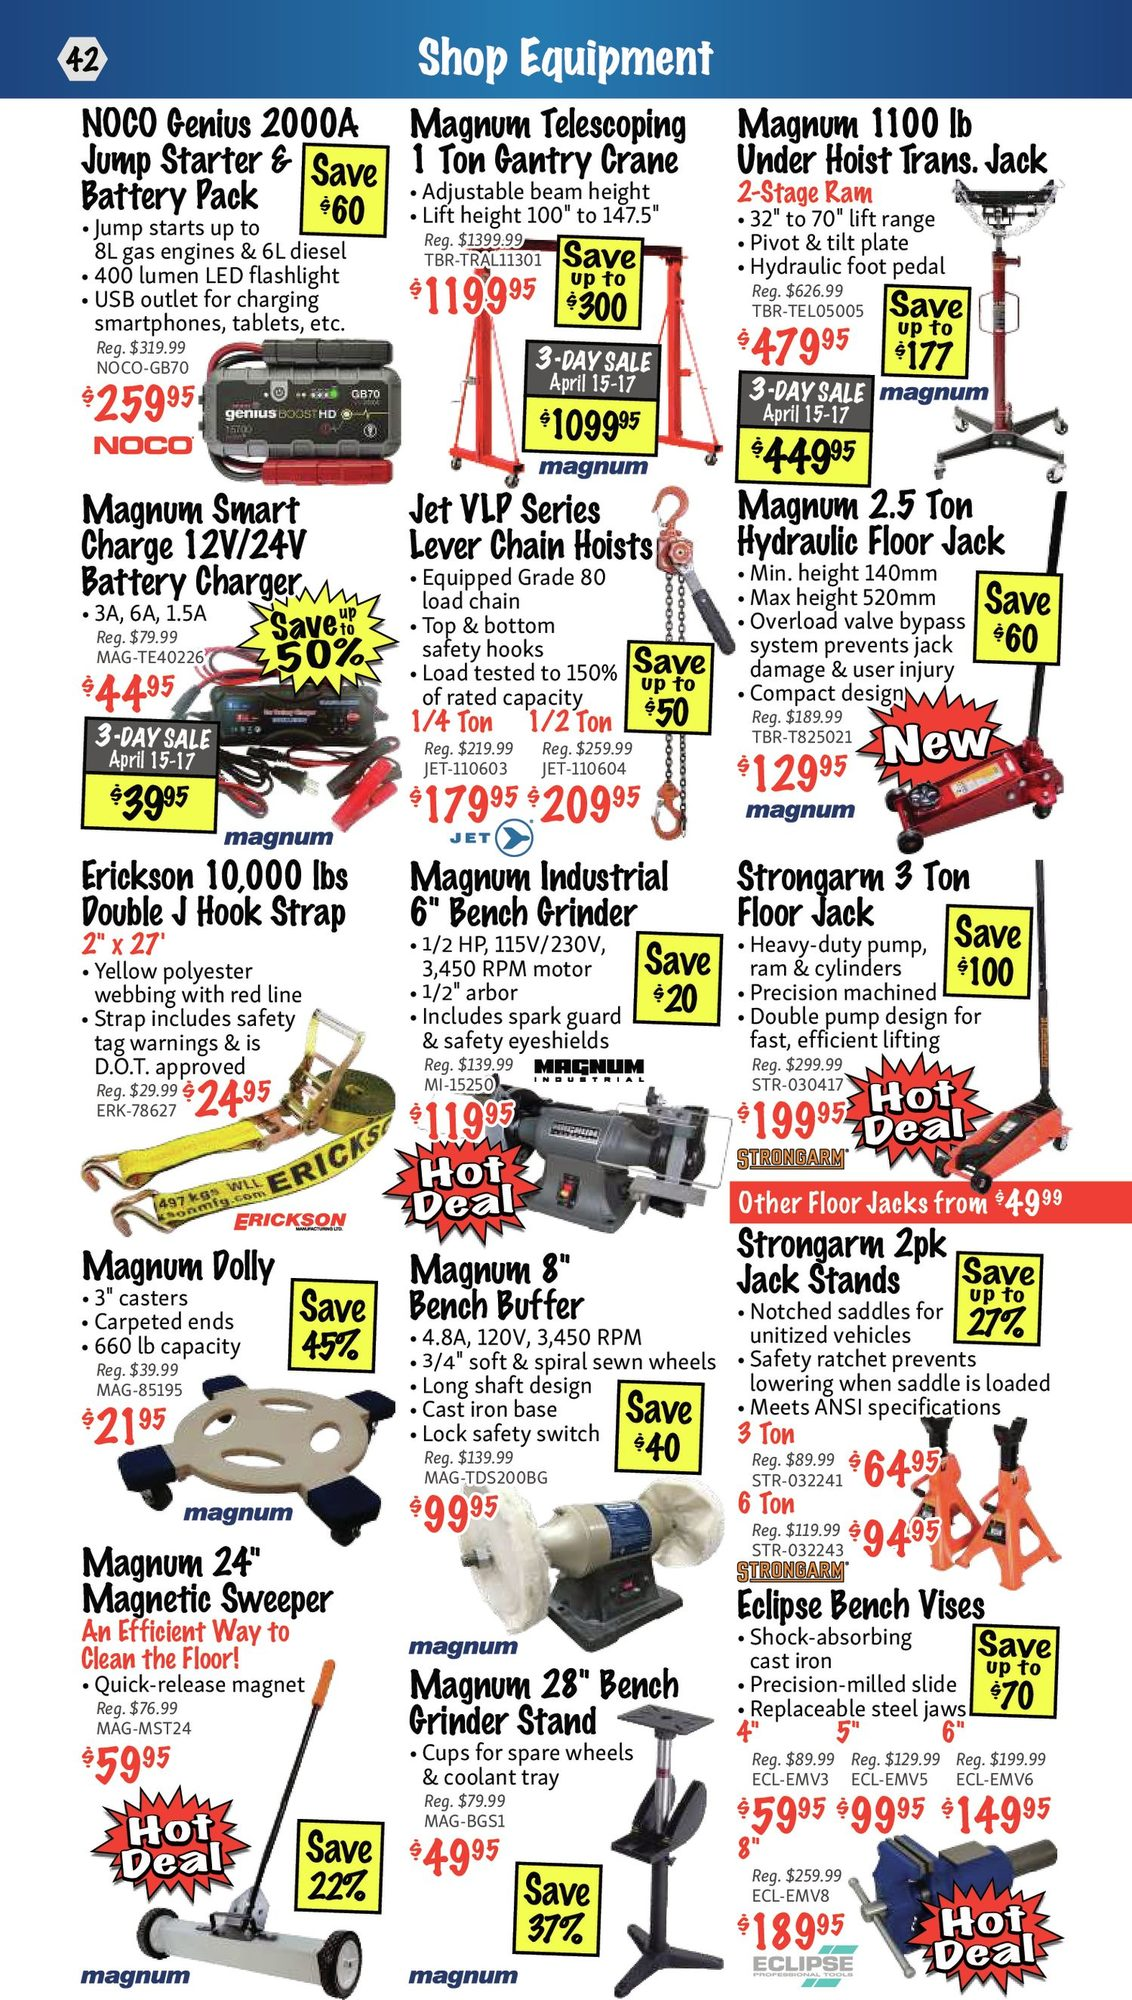 KMS Tools - Hand Tools, Air Tools & Compressor Sale - Page 42